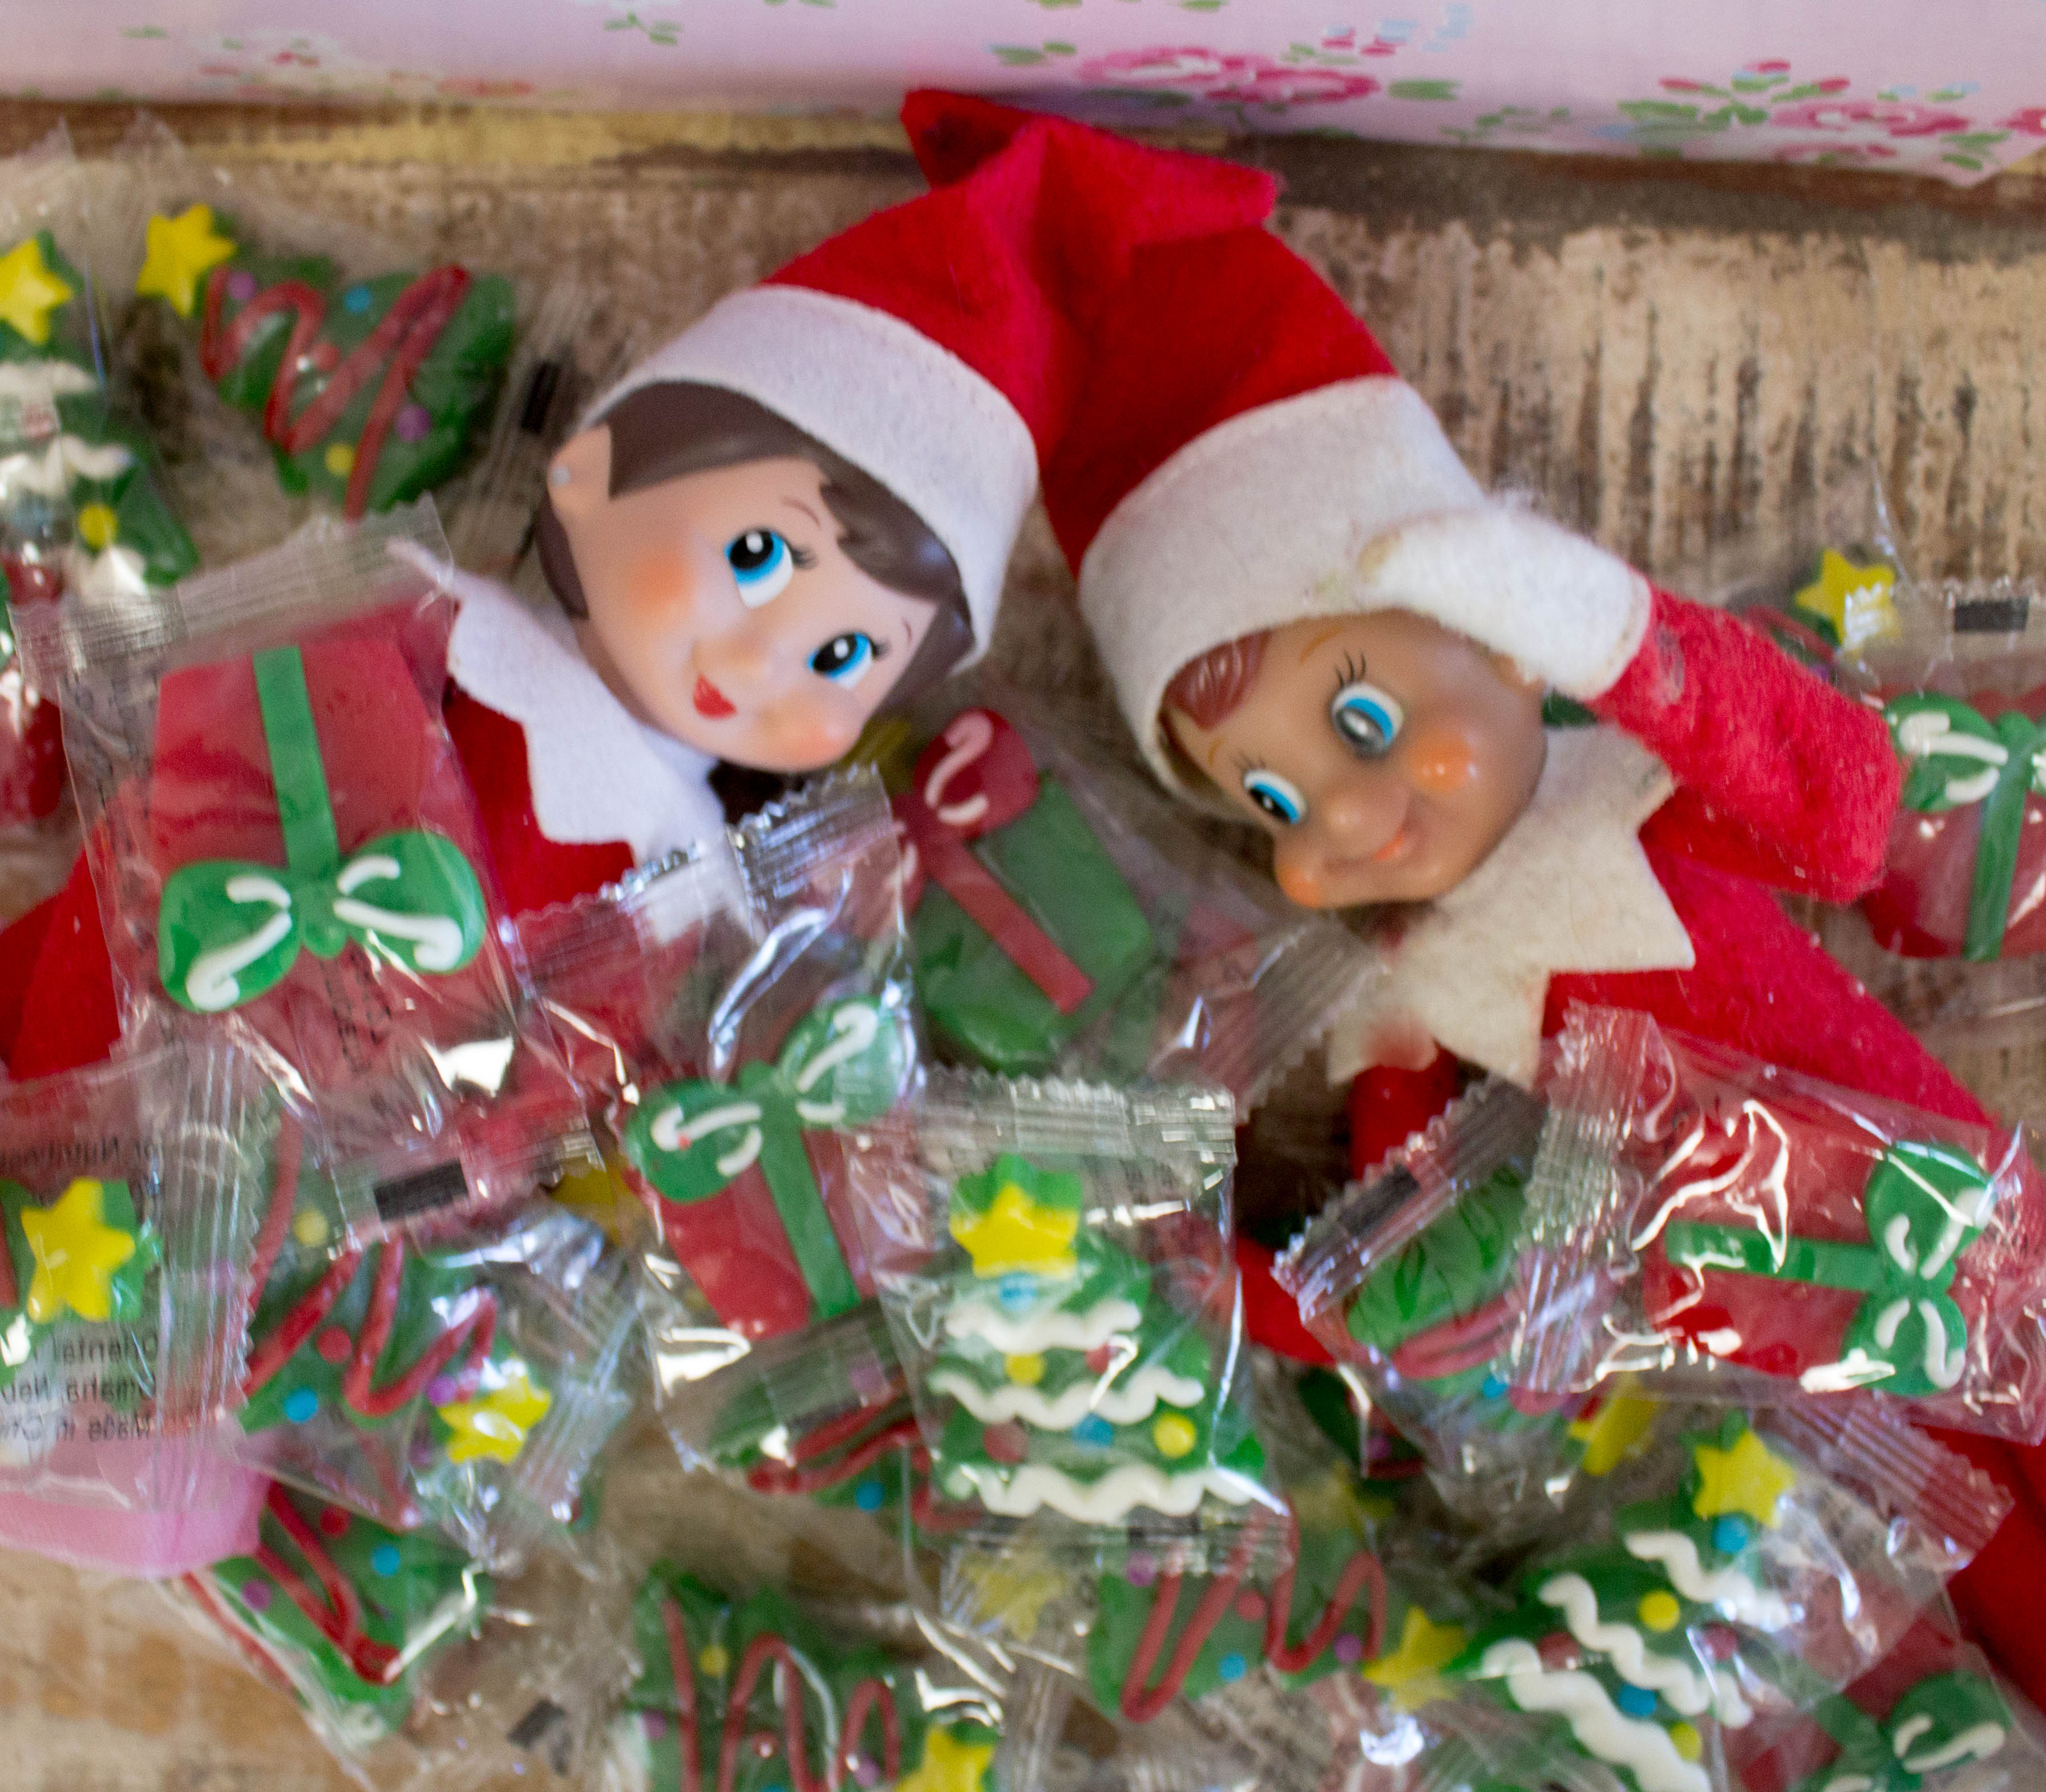 elf-on-the-shelf-ideas-and-elf-on-shelf-products-scenes-christmas-traditions-13